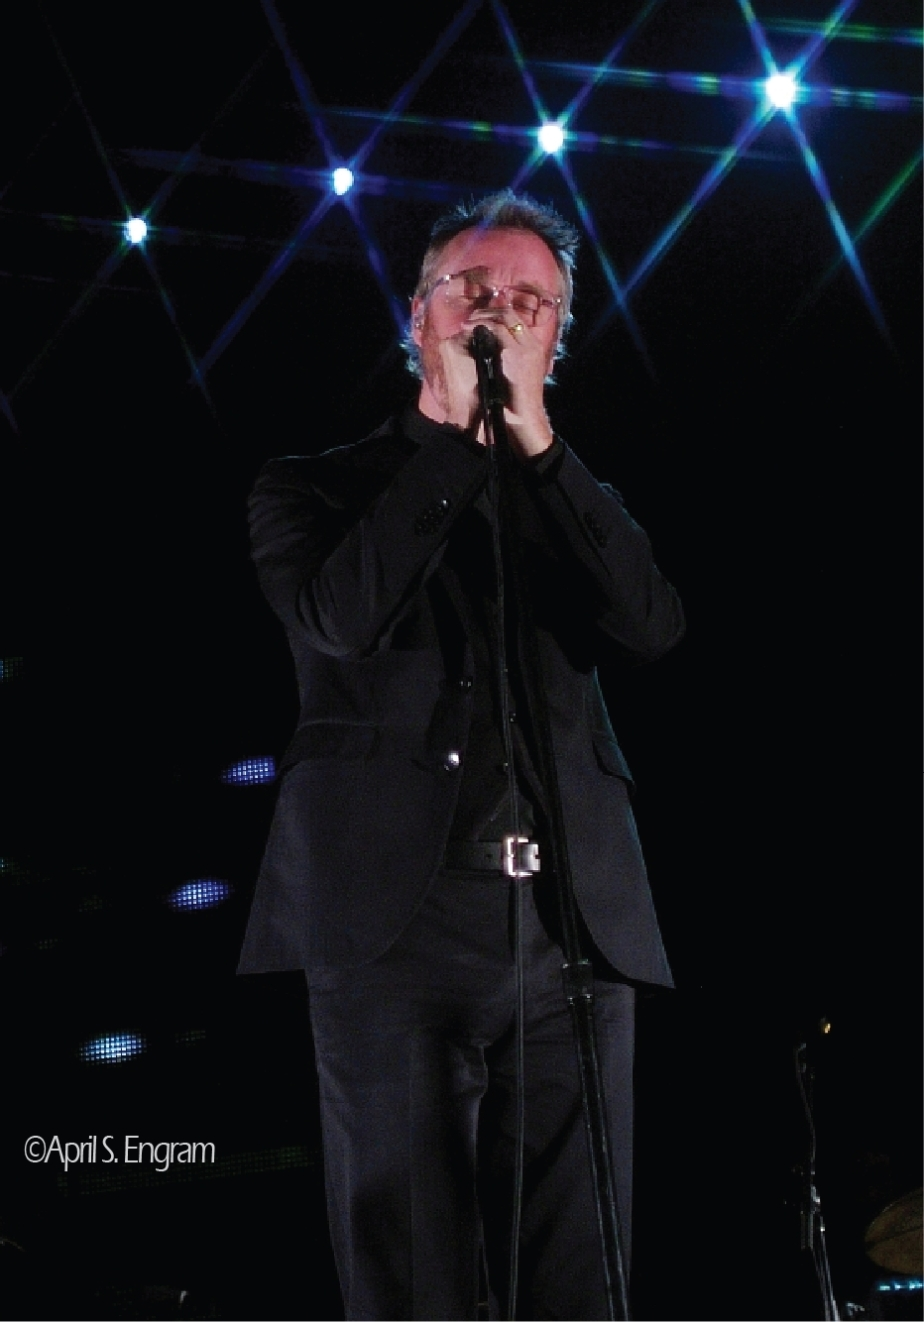 The National Brings Trouble toIthaca